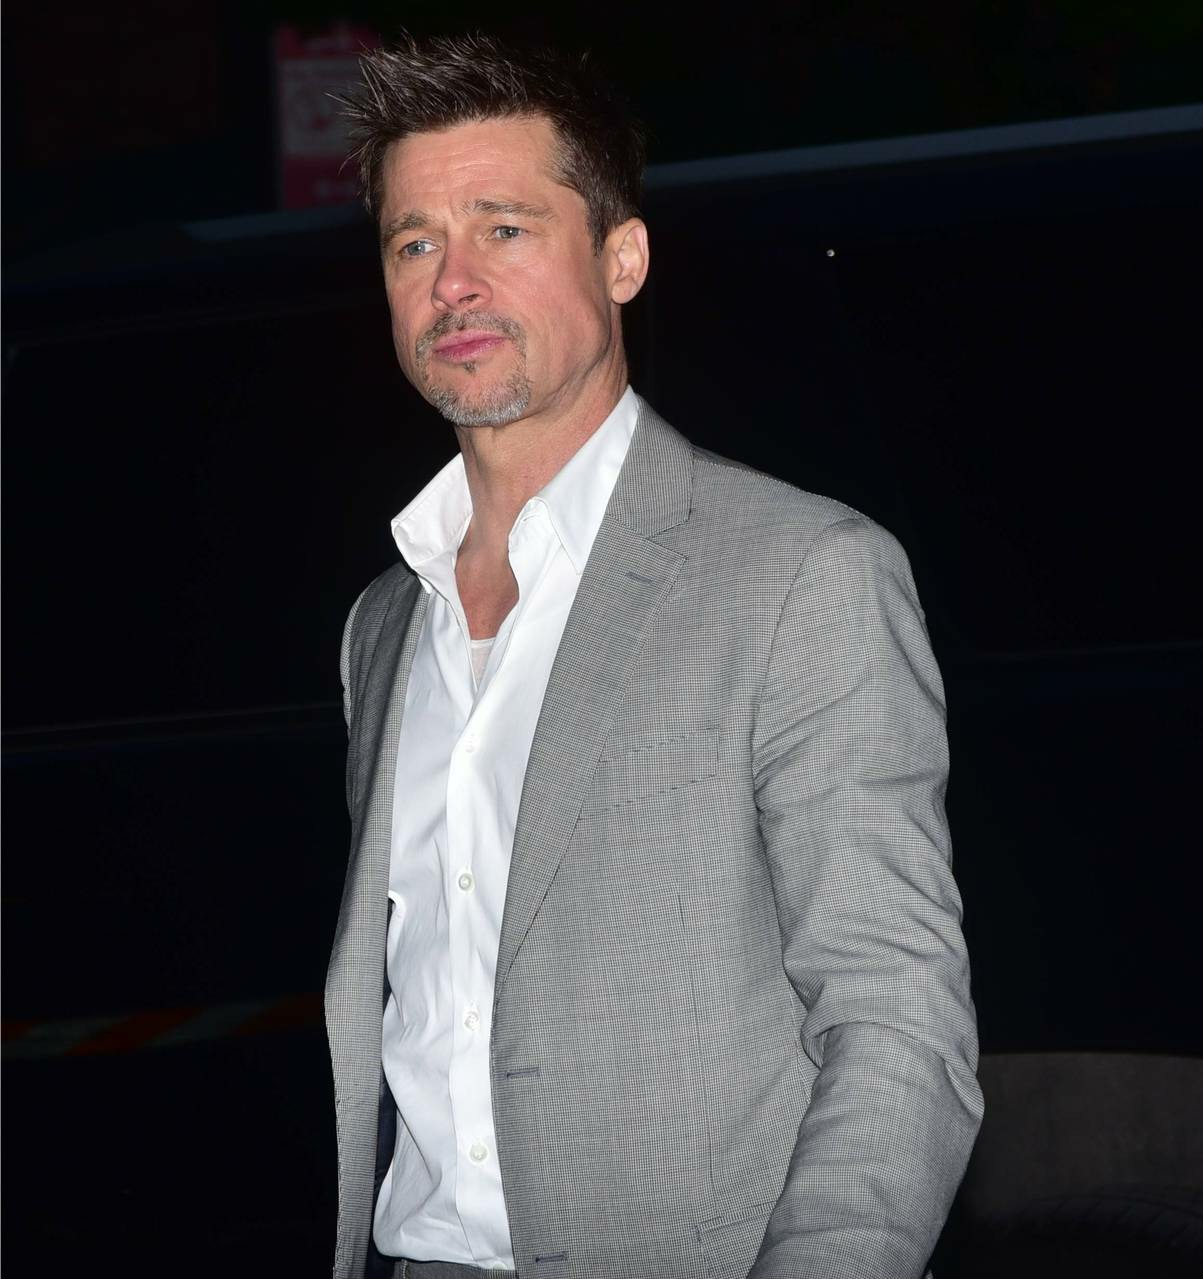 Unnamed sources swear that Brad Pitt & Sienna Miller are not happening